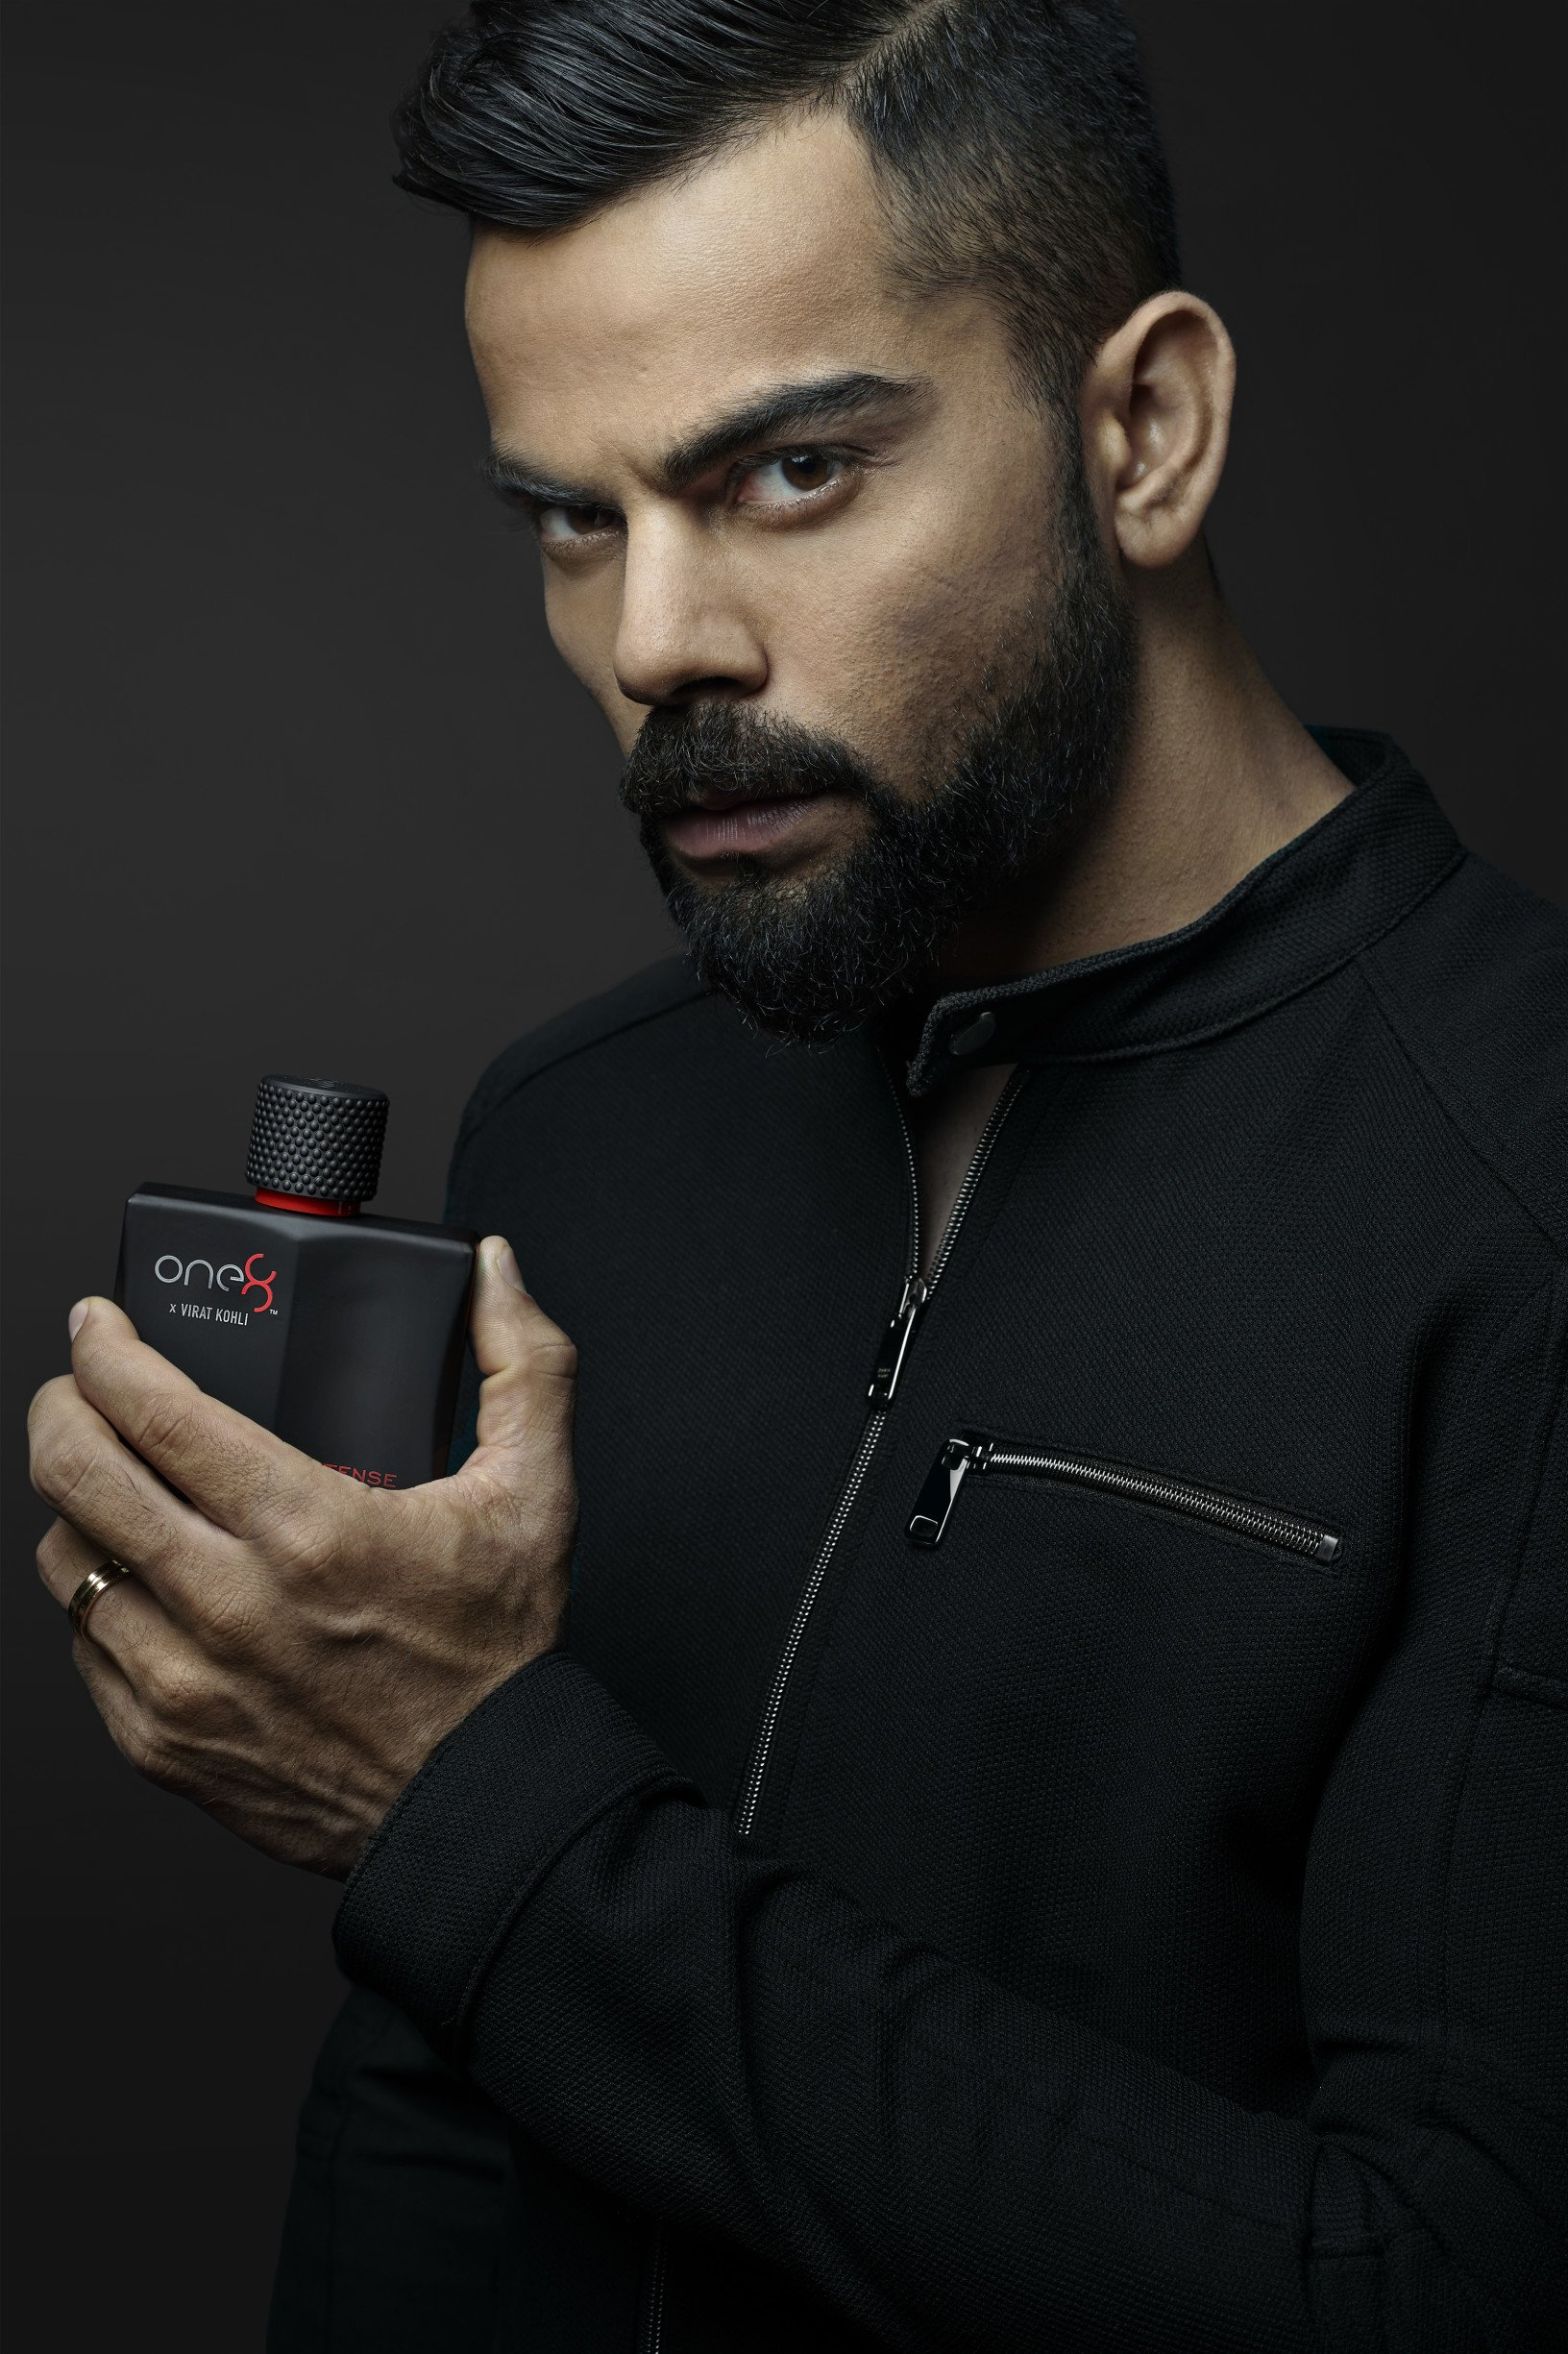 Virat Kohli introduces One8 Fragrances — The brand's maiden foray into the realm of scents